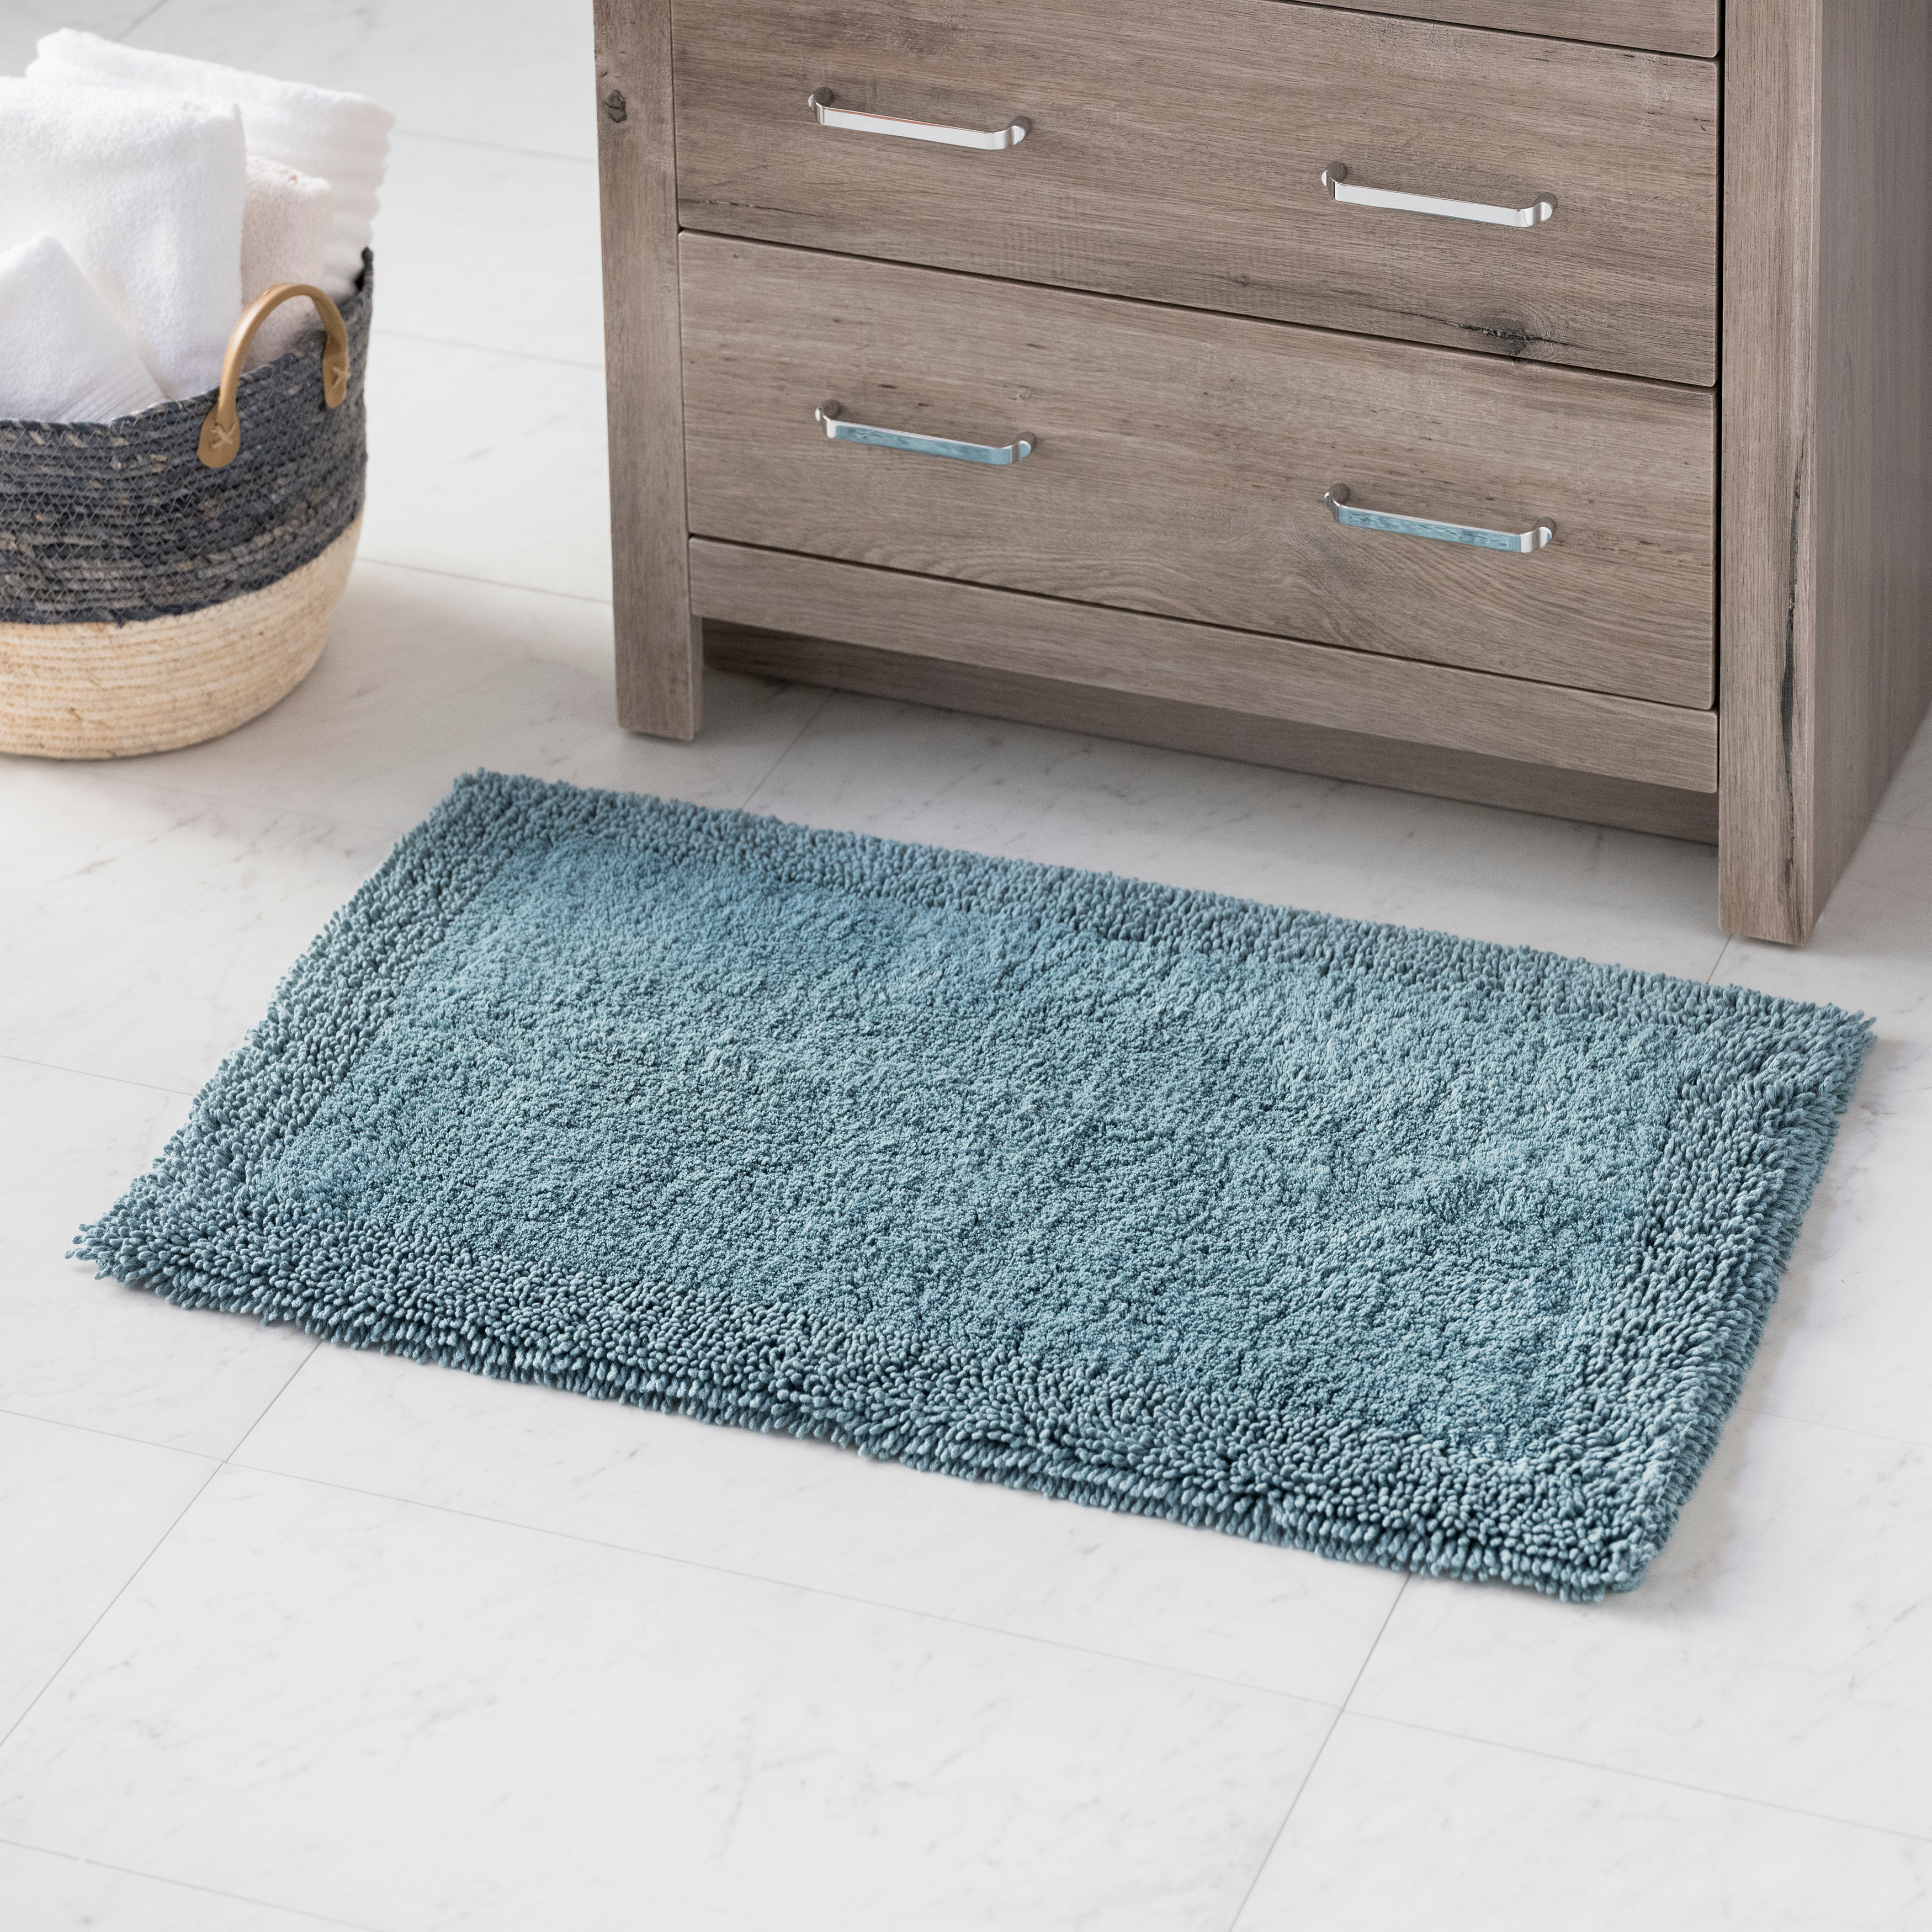 Hotel Style Cotton Blend Solid Bath Rug, 17